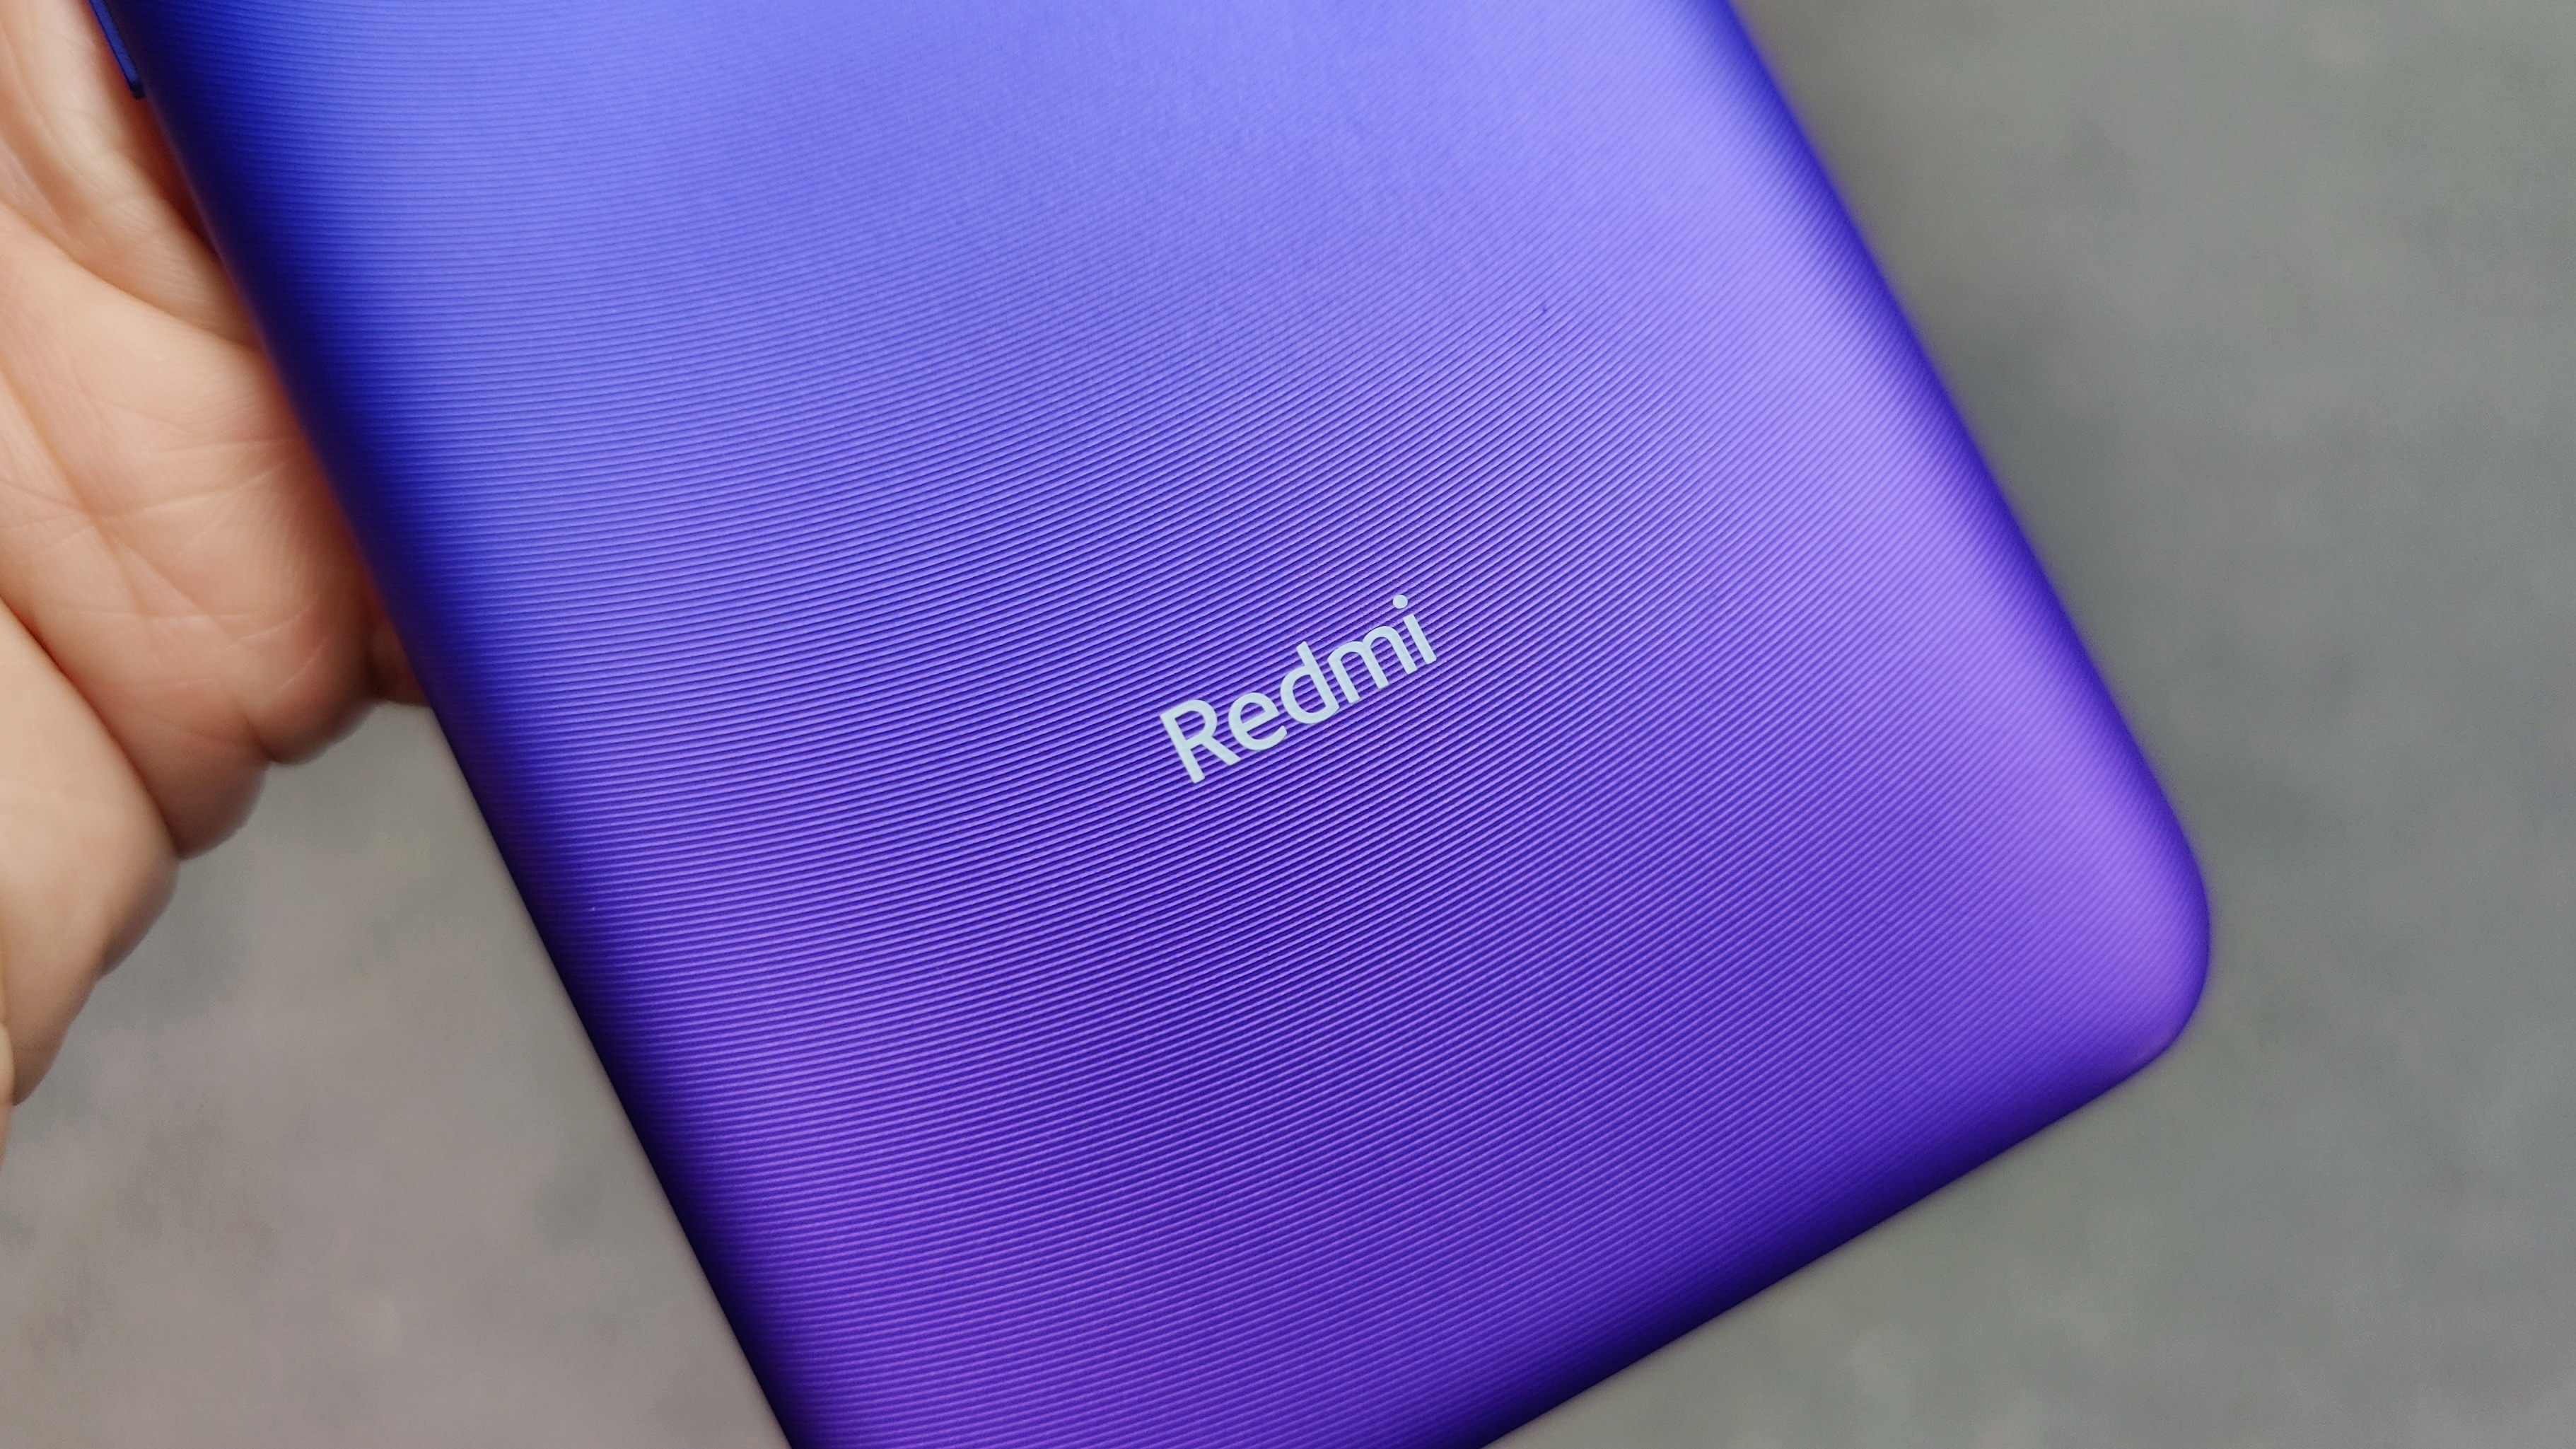 After Redmi 9, Xiaomi may soon announce Redmi 9i in India | TechRadar